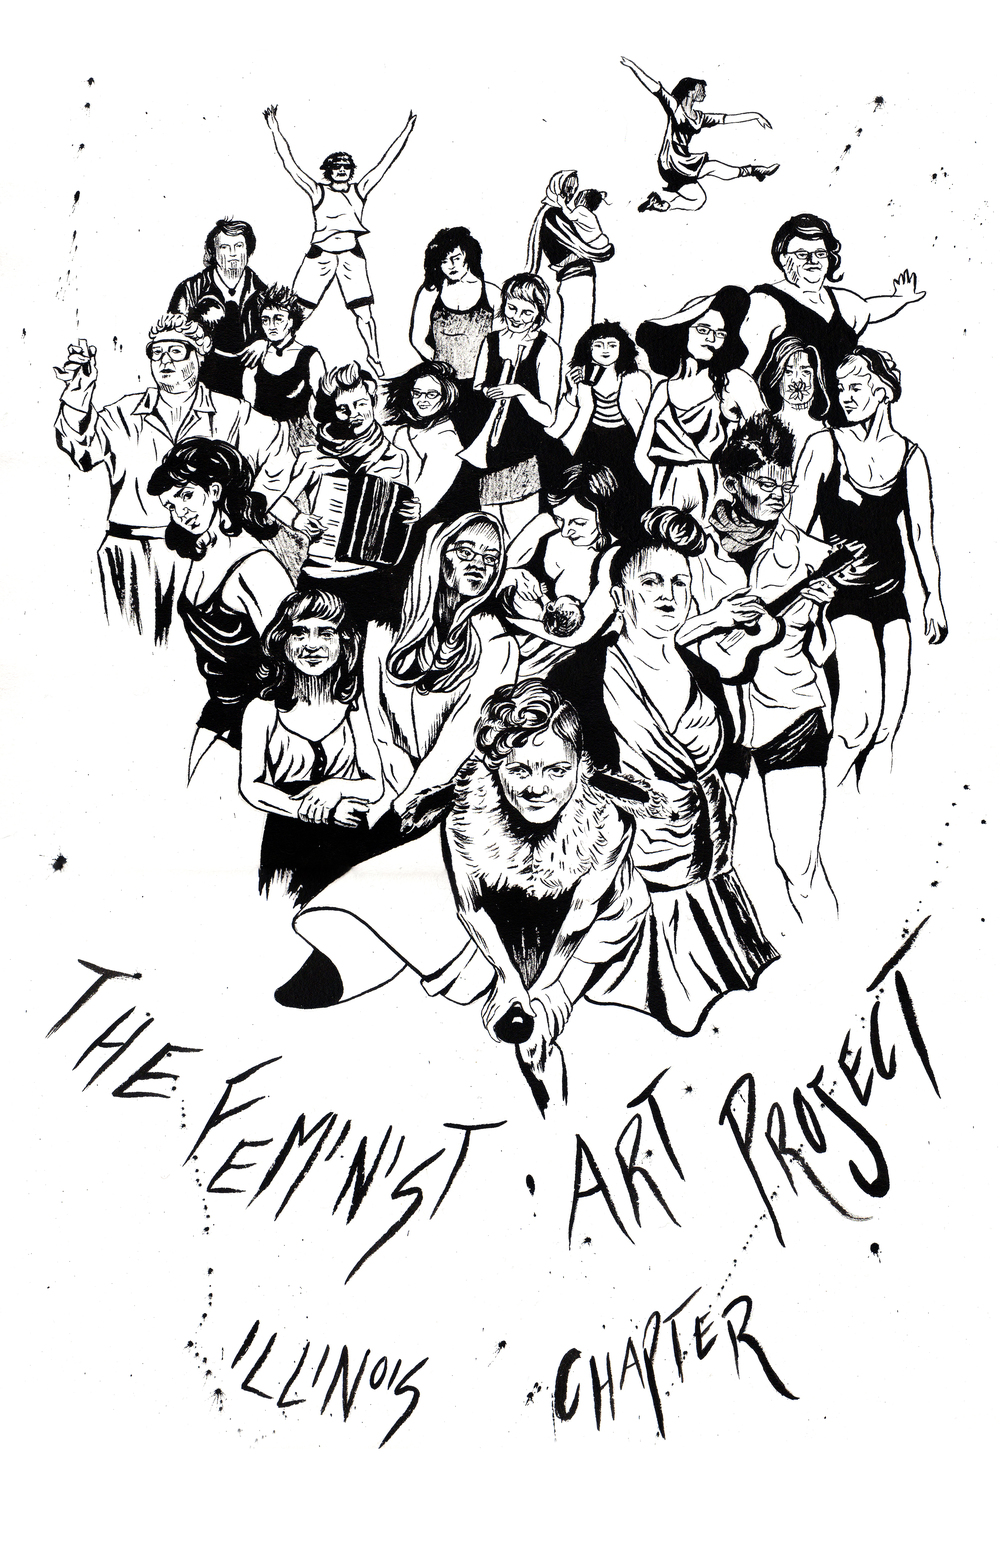 The Feminist Art Project, Illinois Chapter, poster design